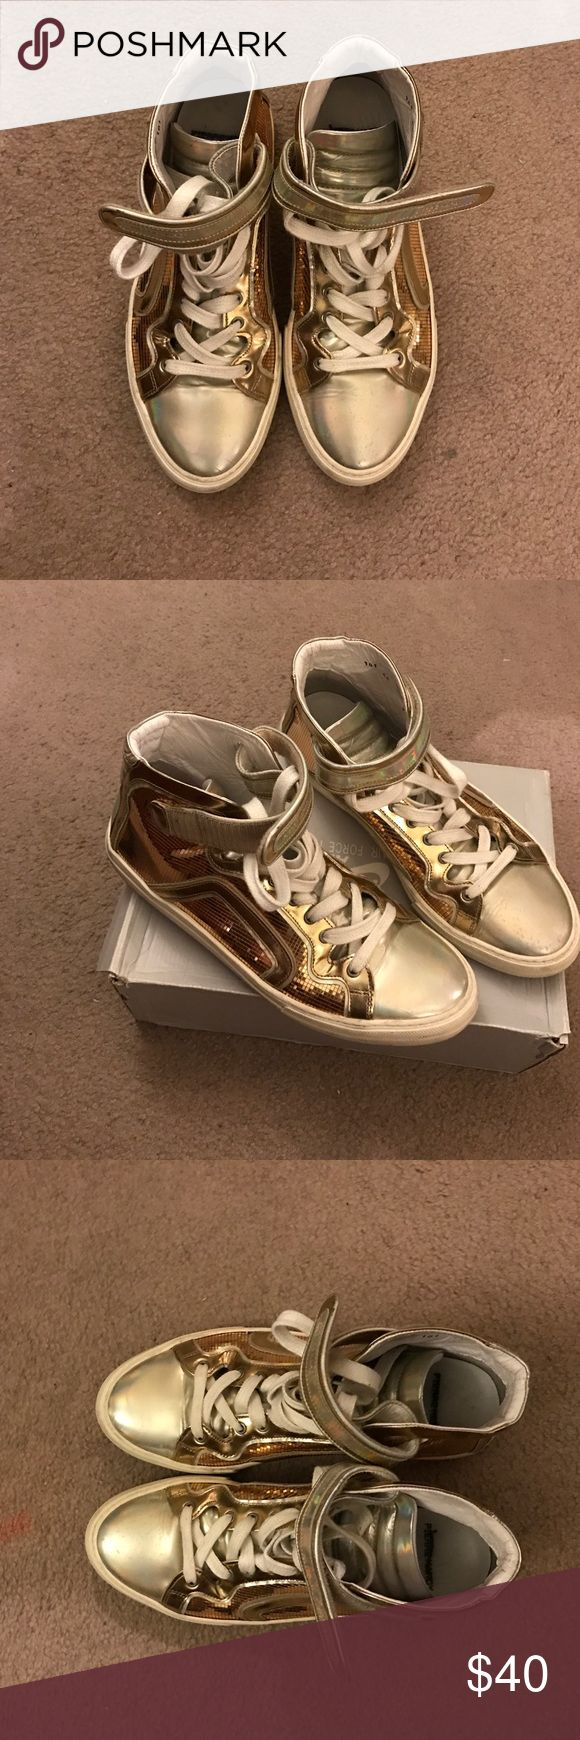 🔥🔥Gold Pierre Hardy, good condition Gold Pierre Hardy Sneakers, good condition Pierre Hardy Shoes Sneakers